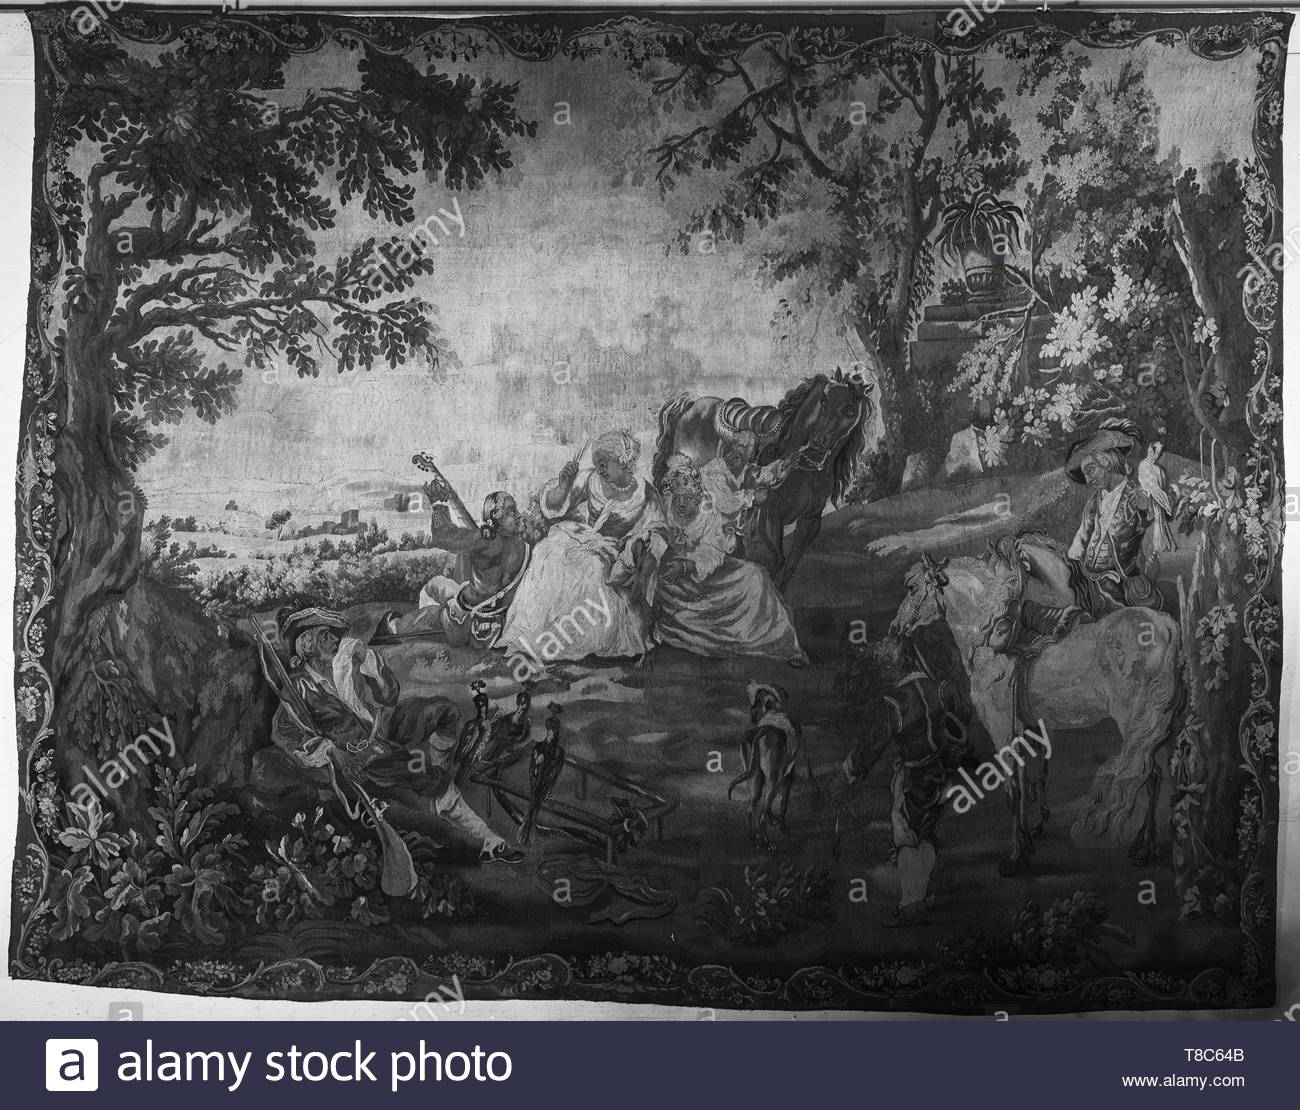 Falens, Carel van (Flemish, 1683-1733) (designed after) [painter] br Le Bas, Jacques-Philippe (French, 1707-1783) (designed after) [printmaker]-Falconers resting, Image 1 - Stock Image